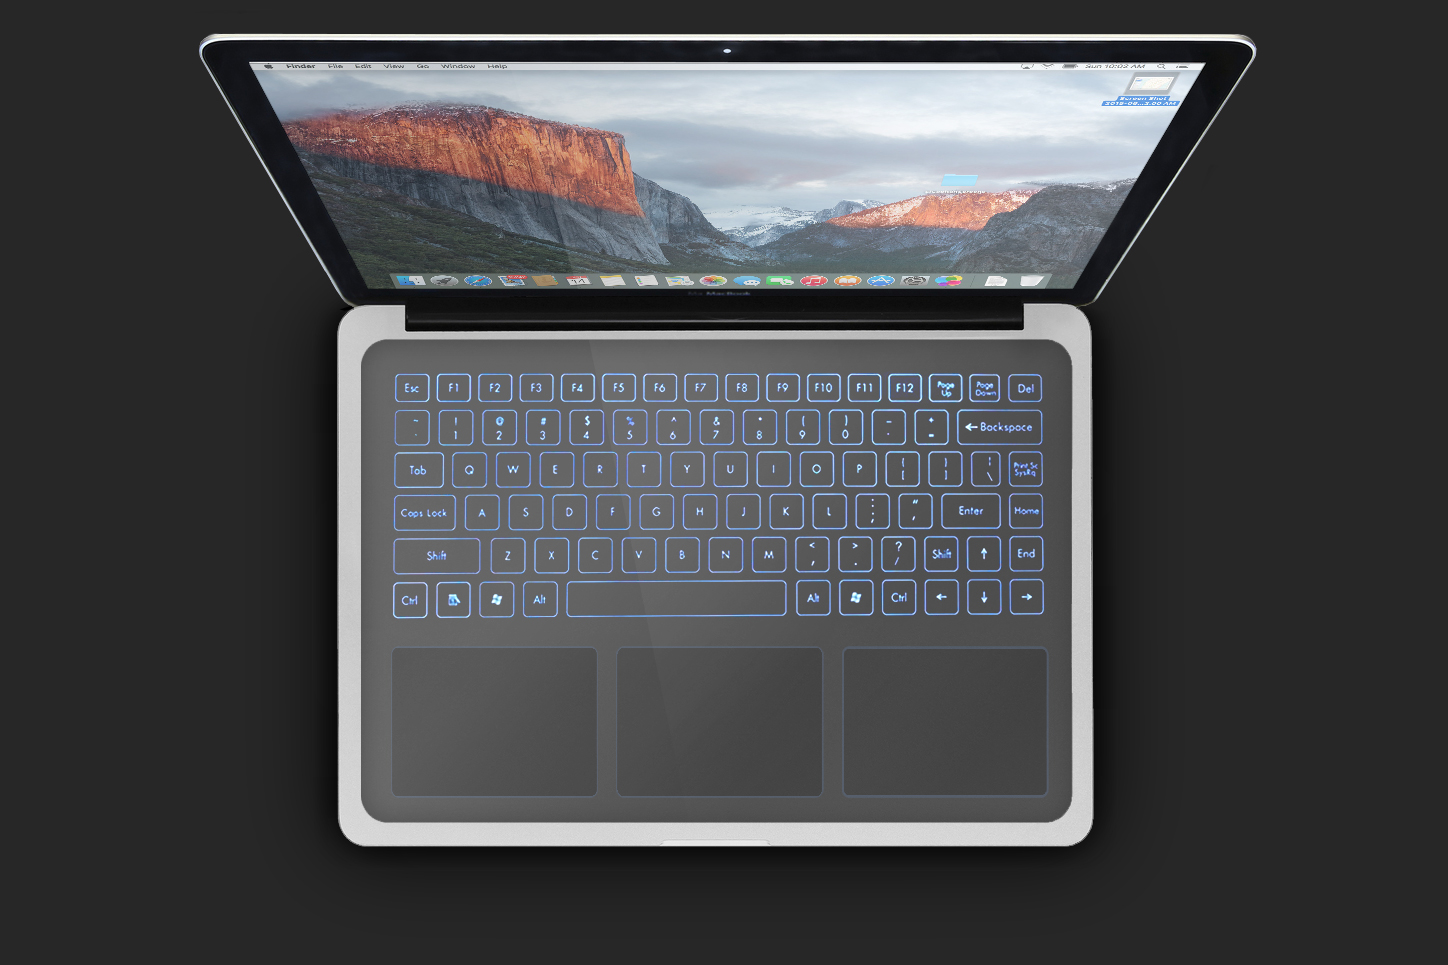 Drawn keyboard imac All apple haptic patents v2